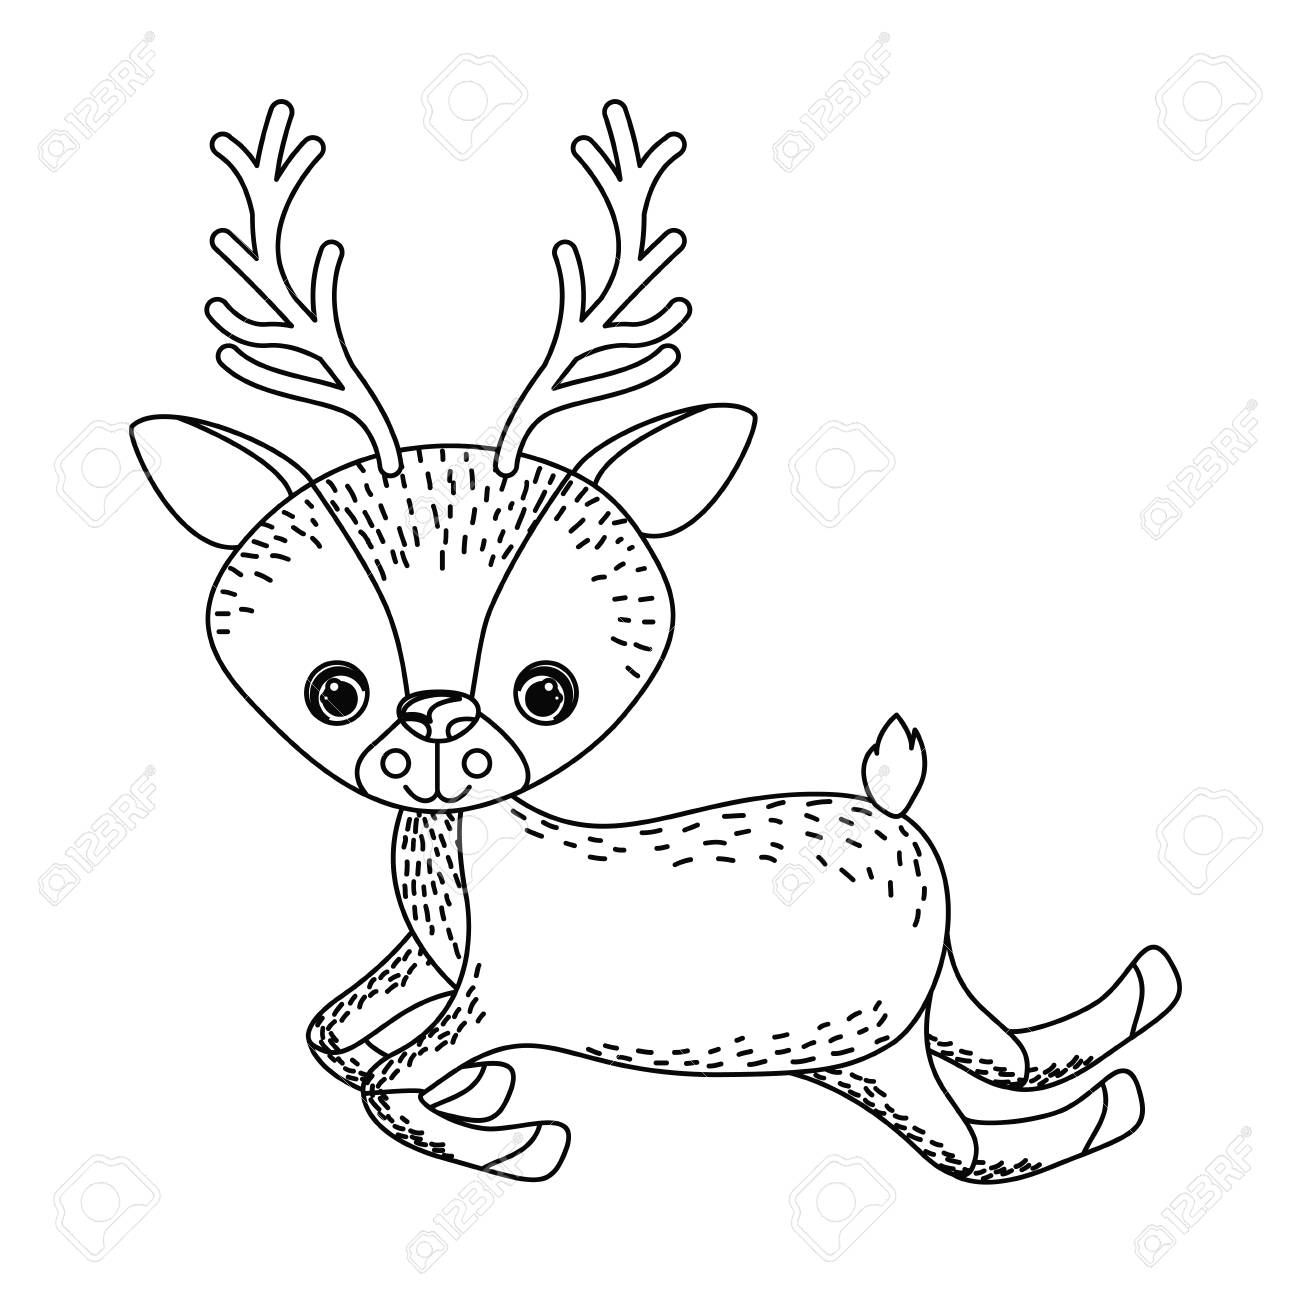 Reindeer Cute Wildlife Icon Vector Isolated Graphic Royalty Free